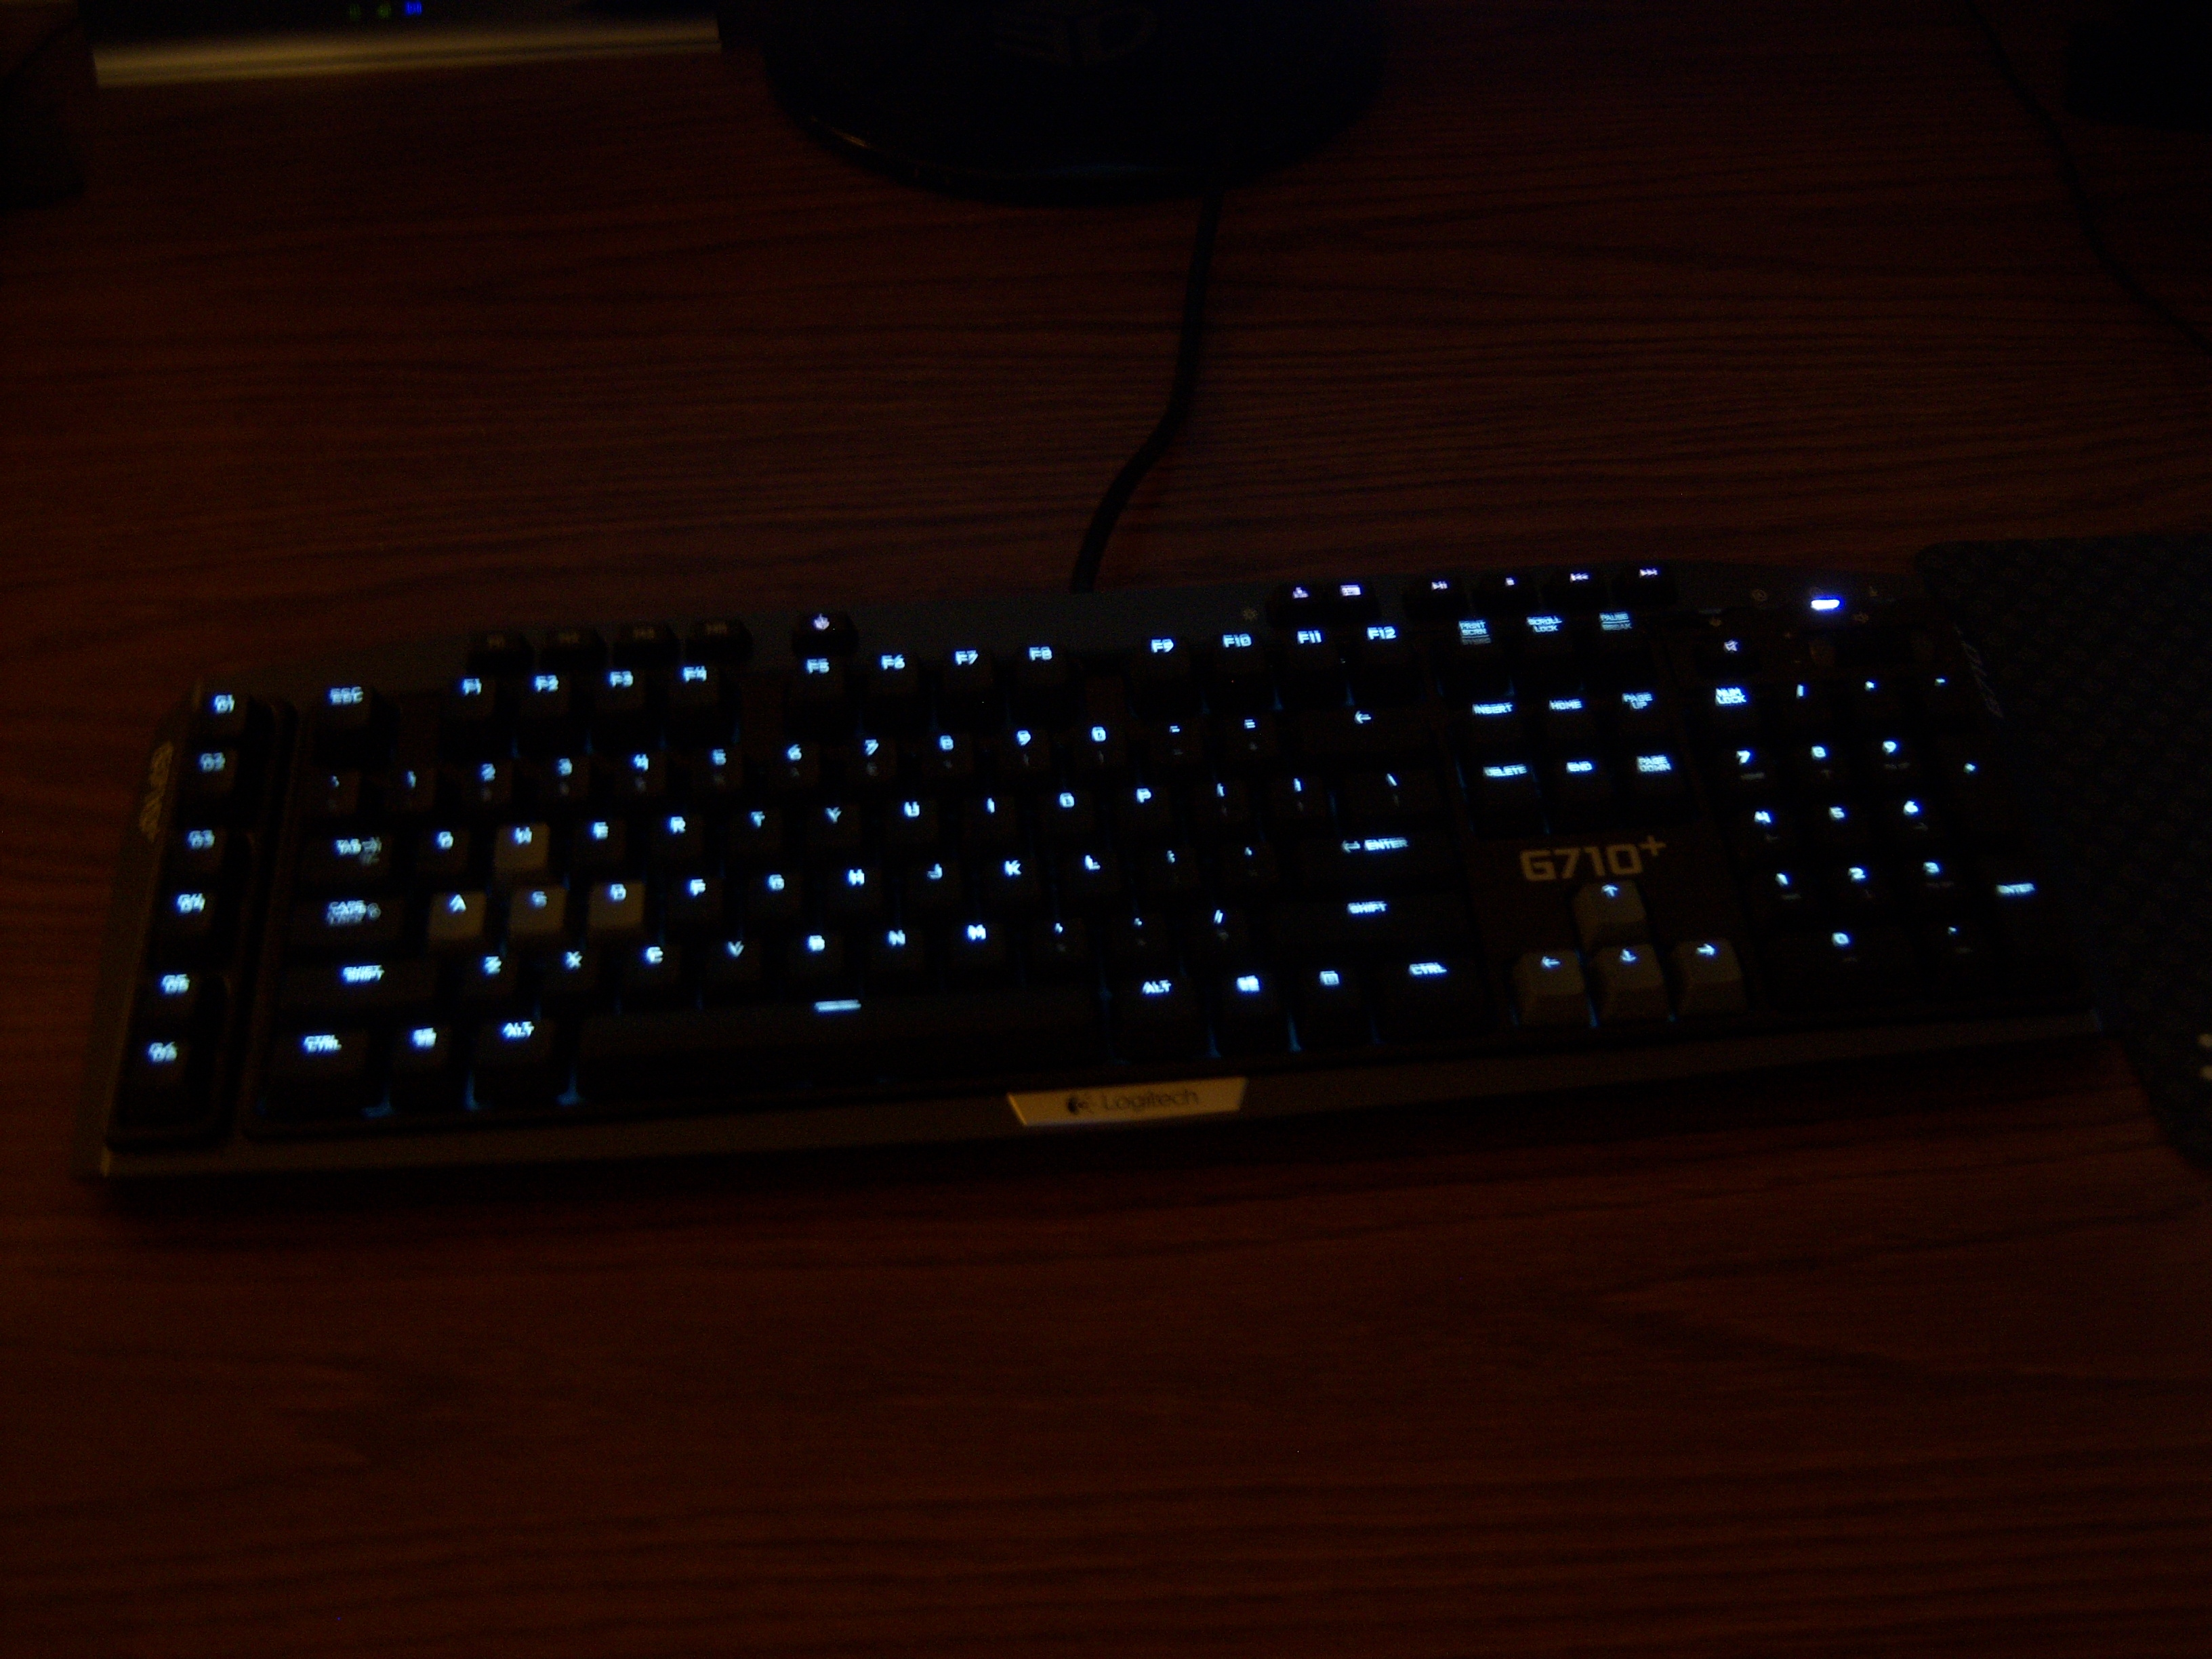 Opinions On Logitech G710 Vs Other Mechanical Keyboards Overclock Imo X6 Lucky Good Luck Which Ever You Choose